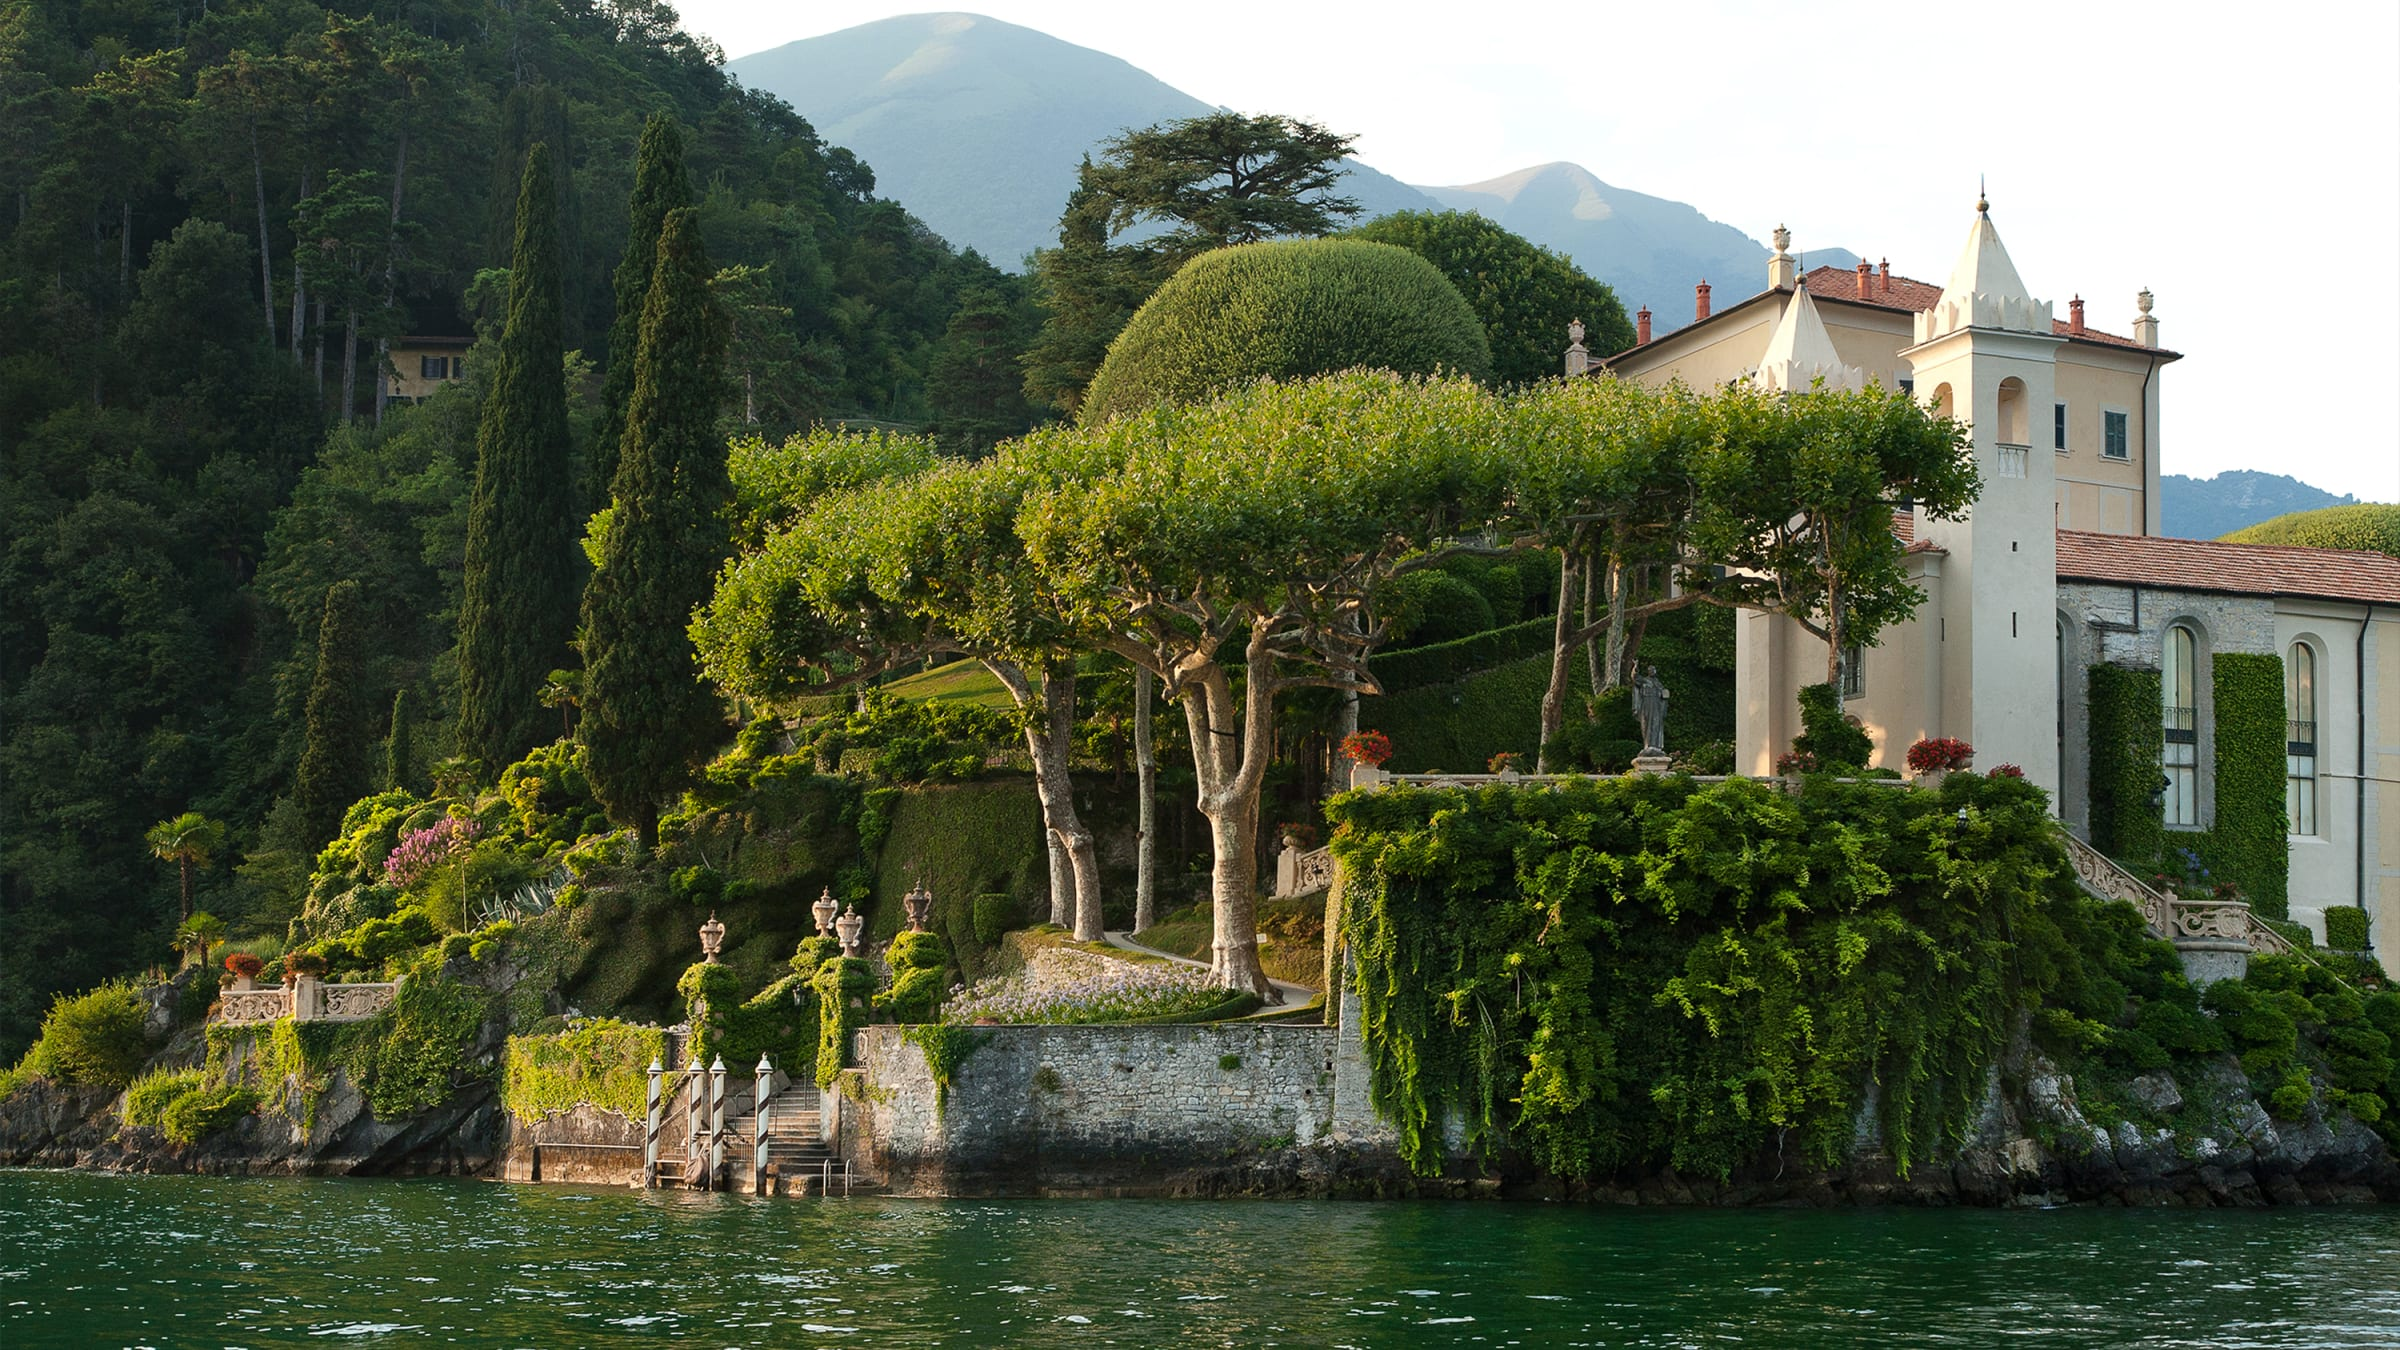 Lake Como's Villa Del Balbianello: How a Franciscan Monastery Became One of the Lake's Most Iconic Must-Sees